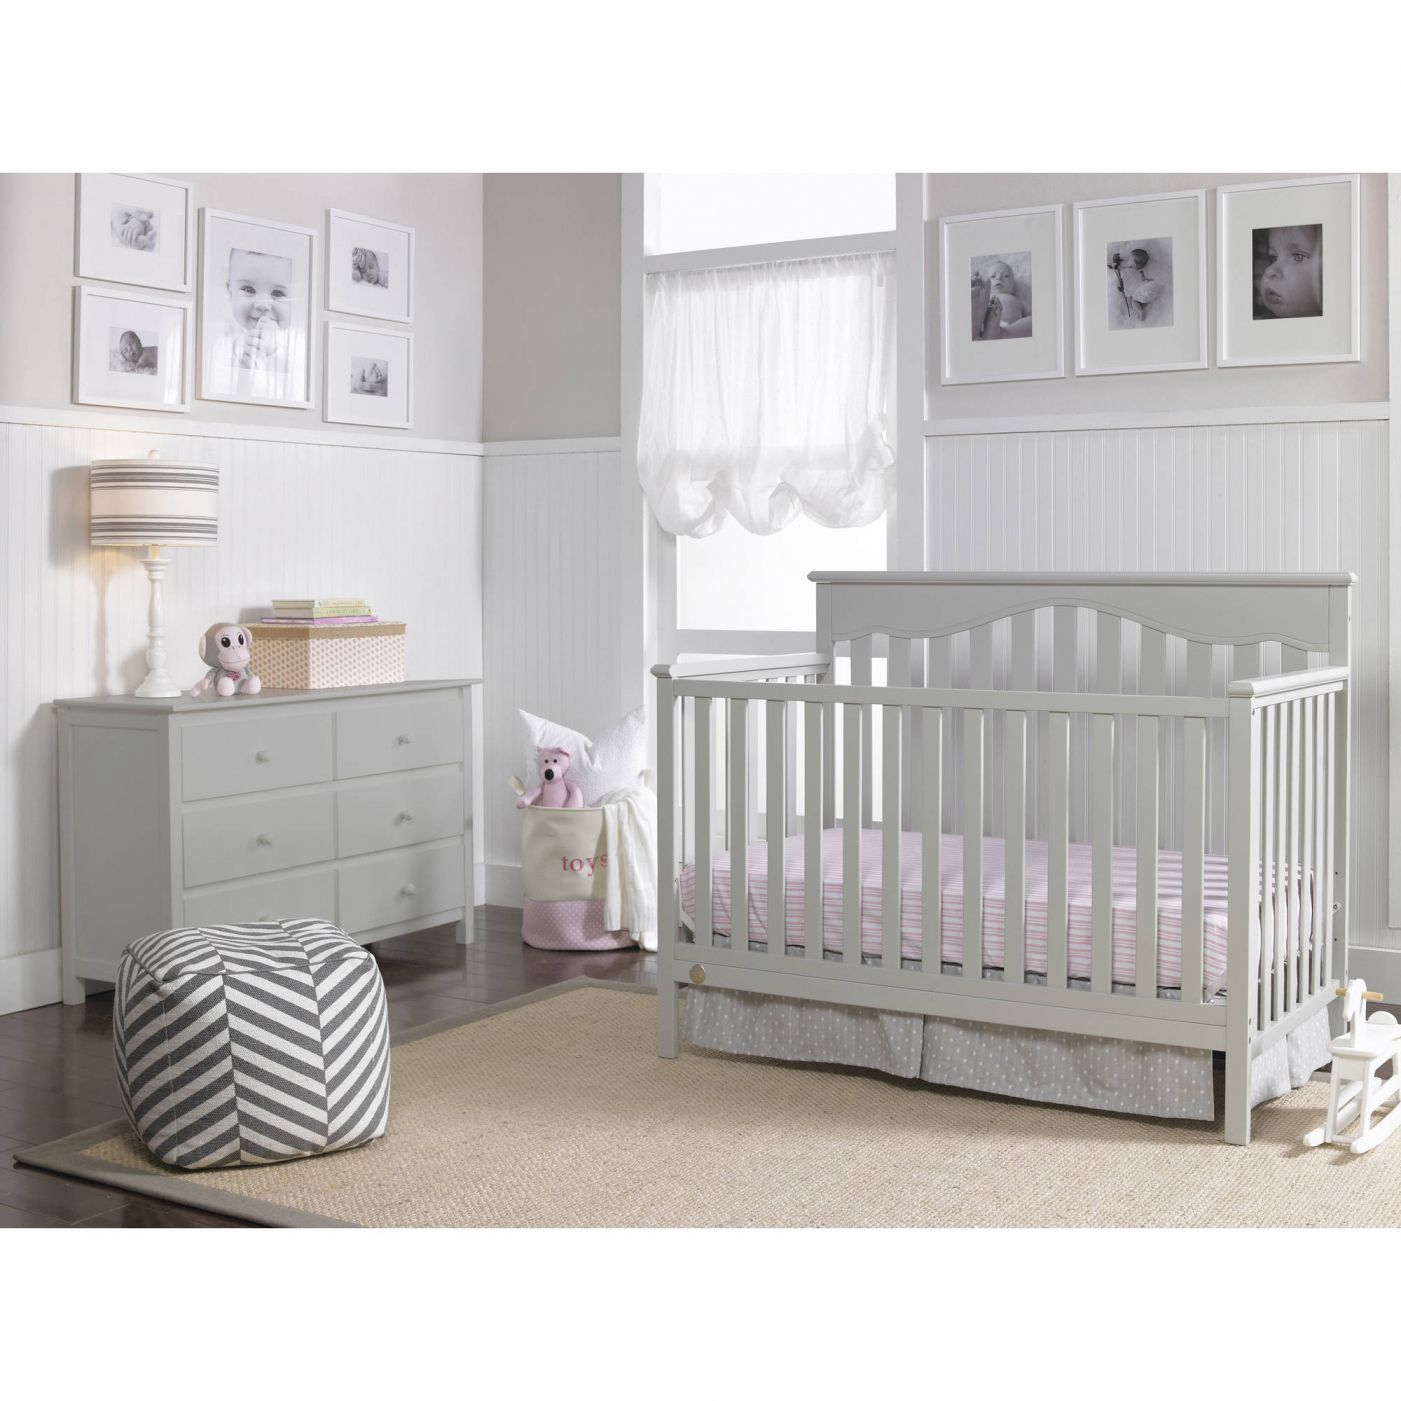 Cheap Baby Crib Furniture Sets What is the Best Interior Paint